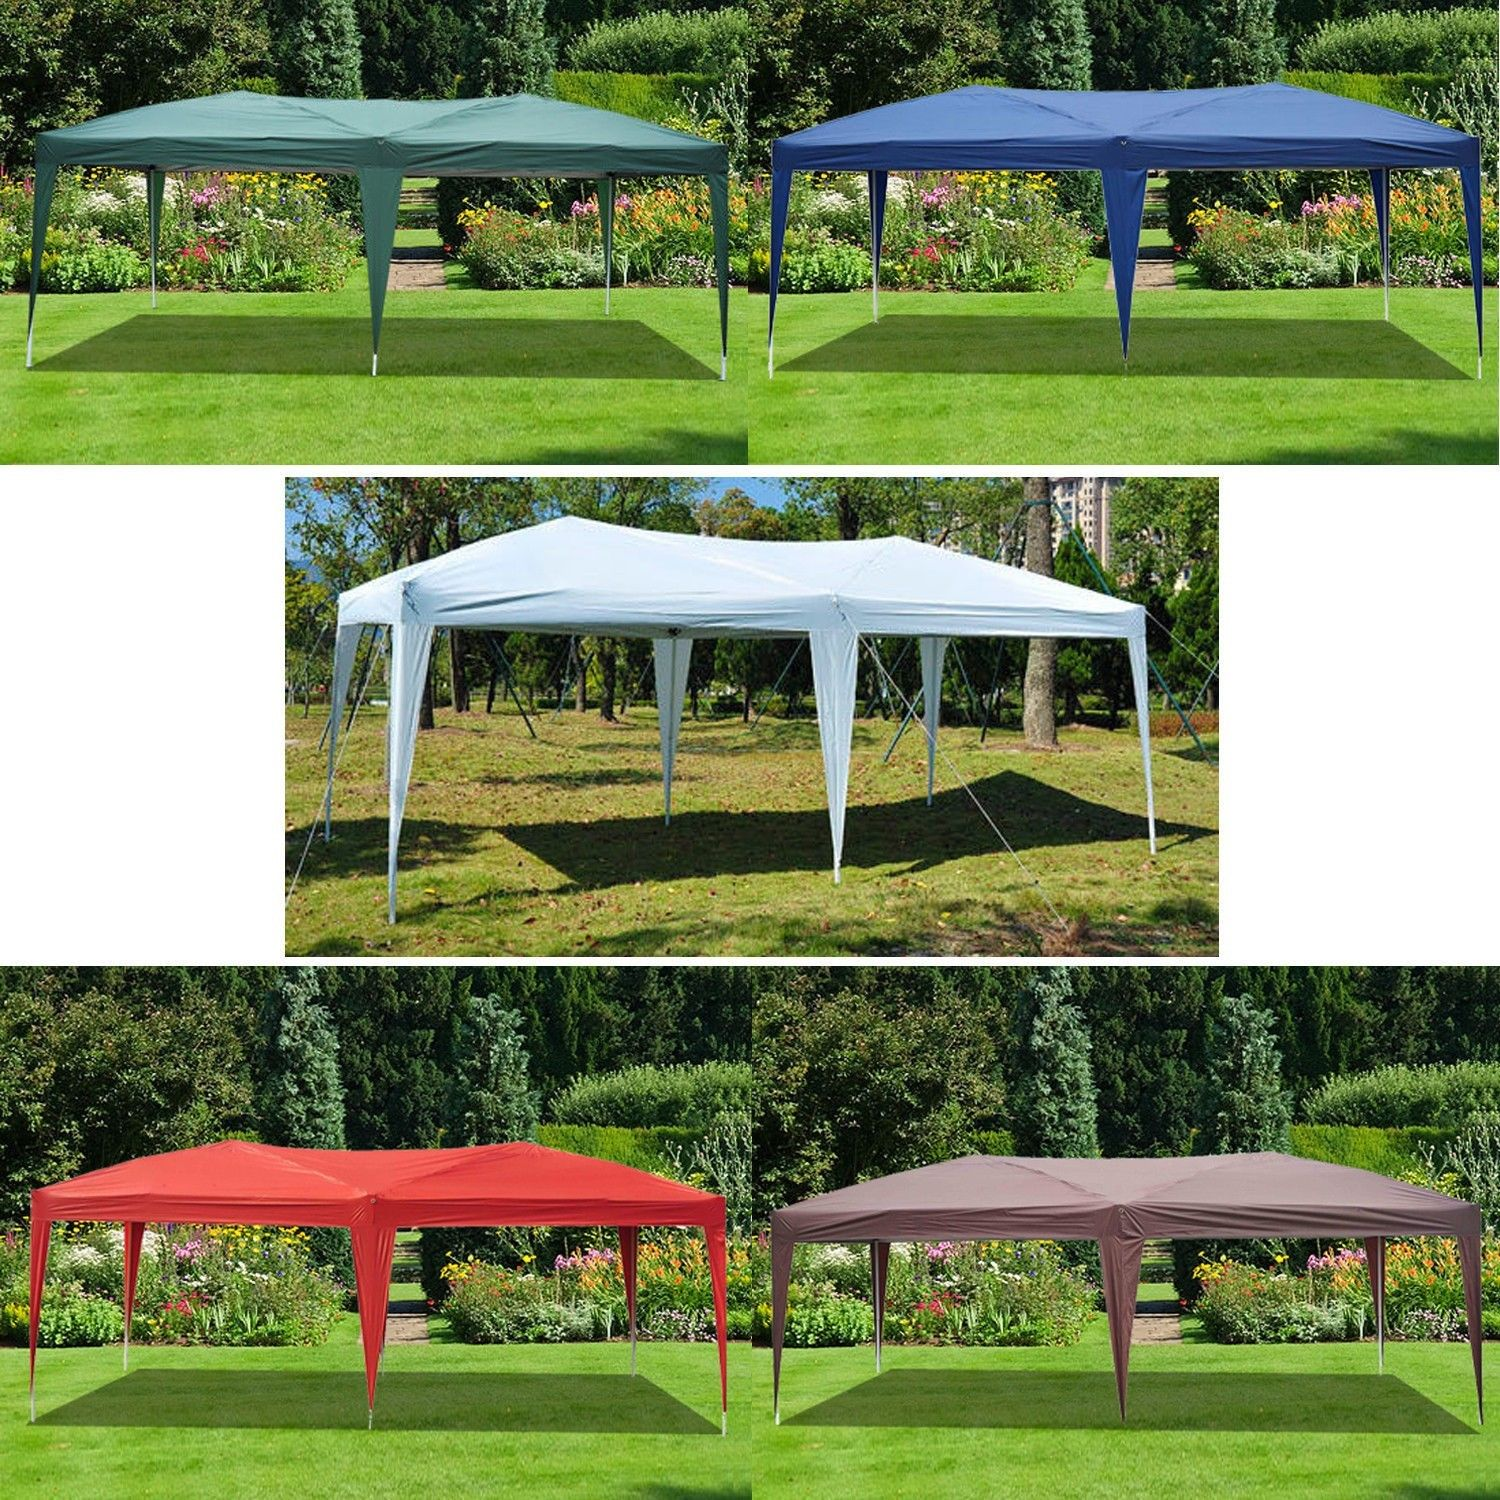 10 x 20 Pop Up Canopy Gazebo Main Image & 10 x 20 Pop Up Canopy Gazebo - 5 Colors -